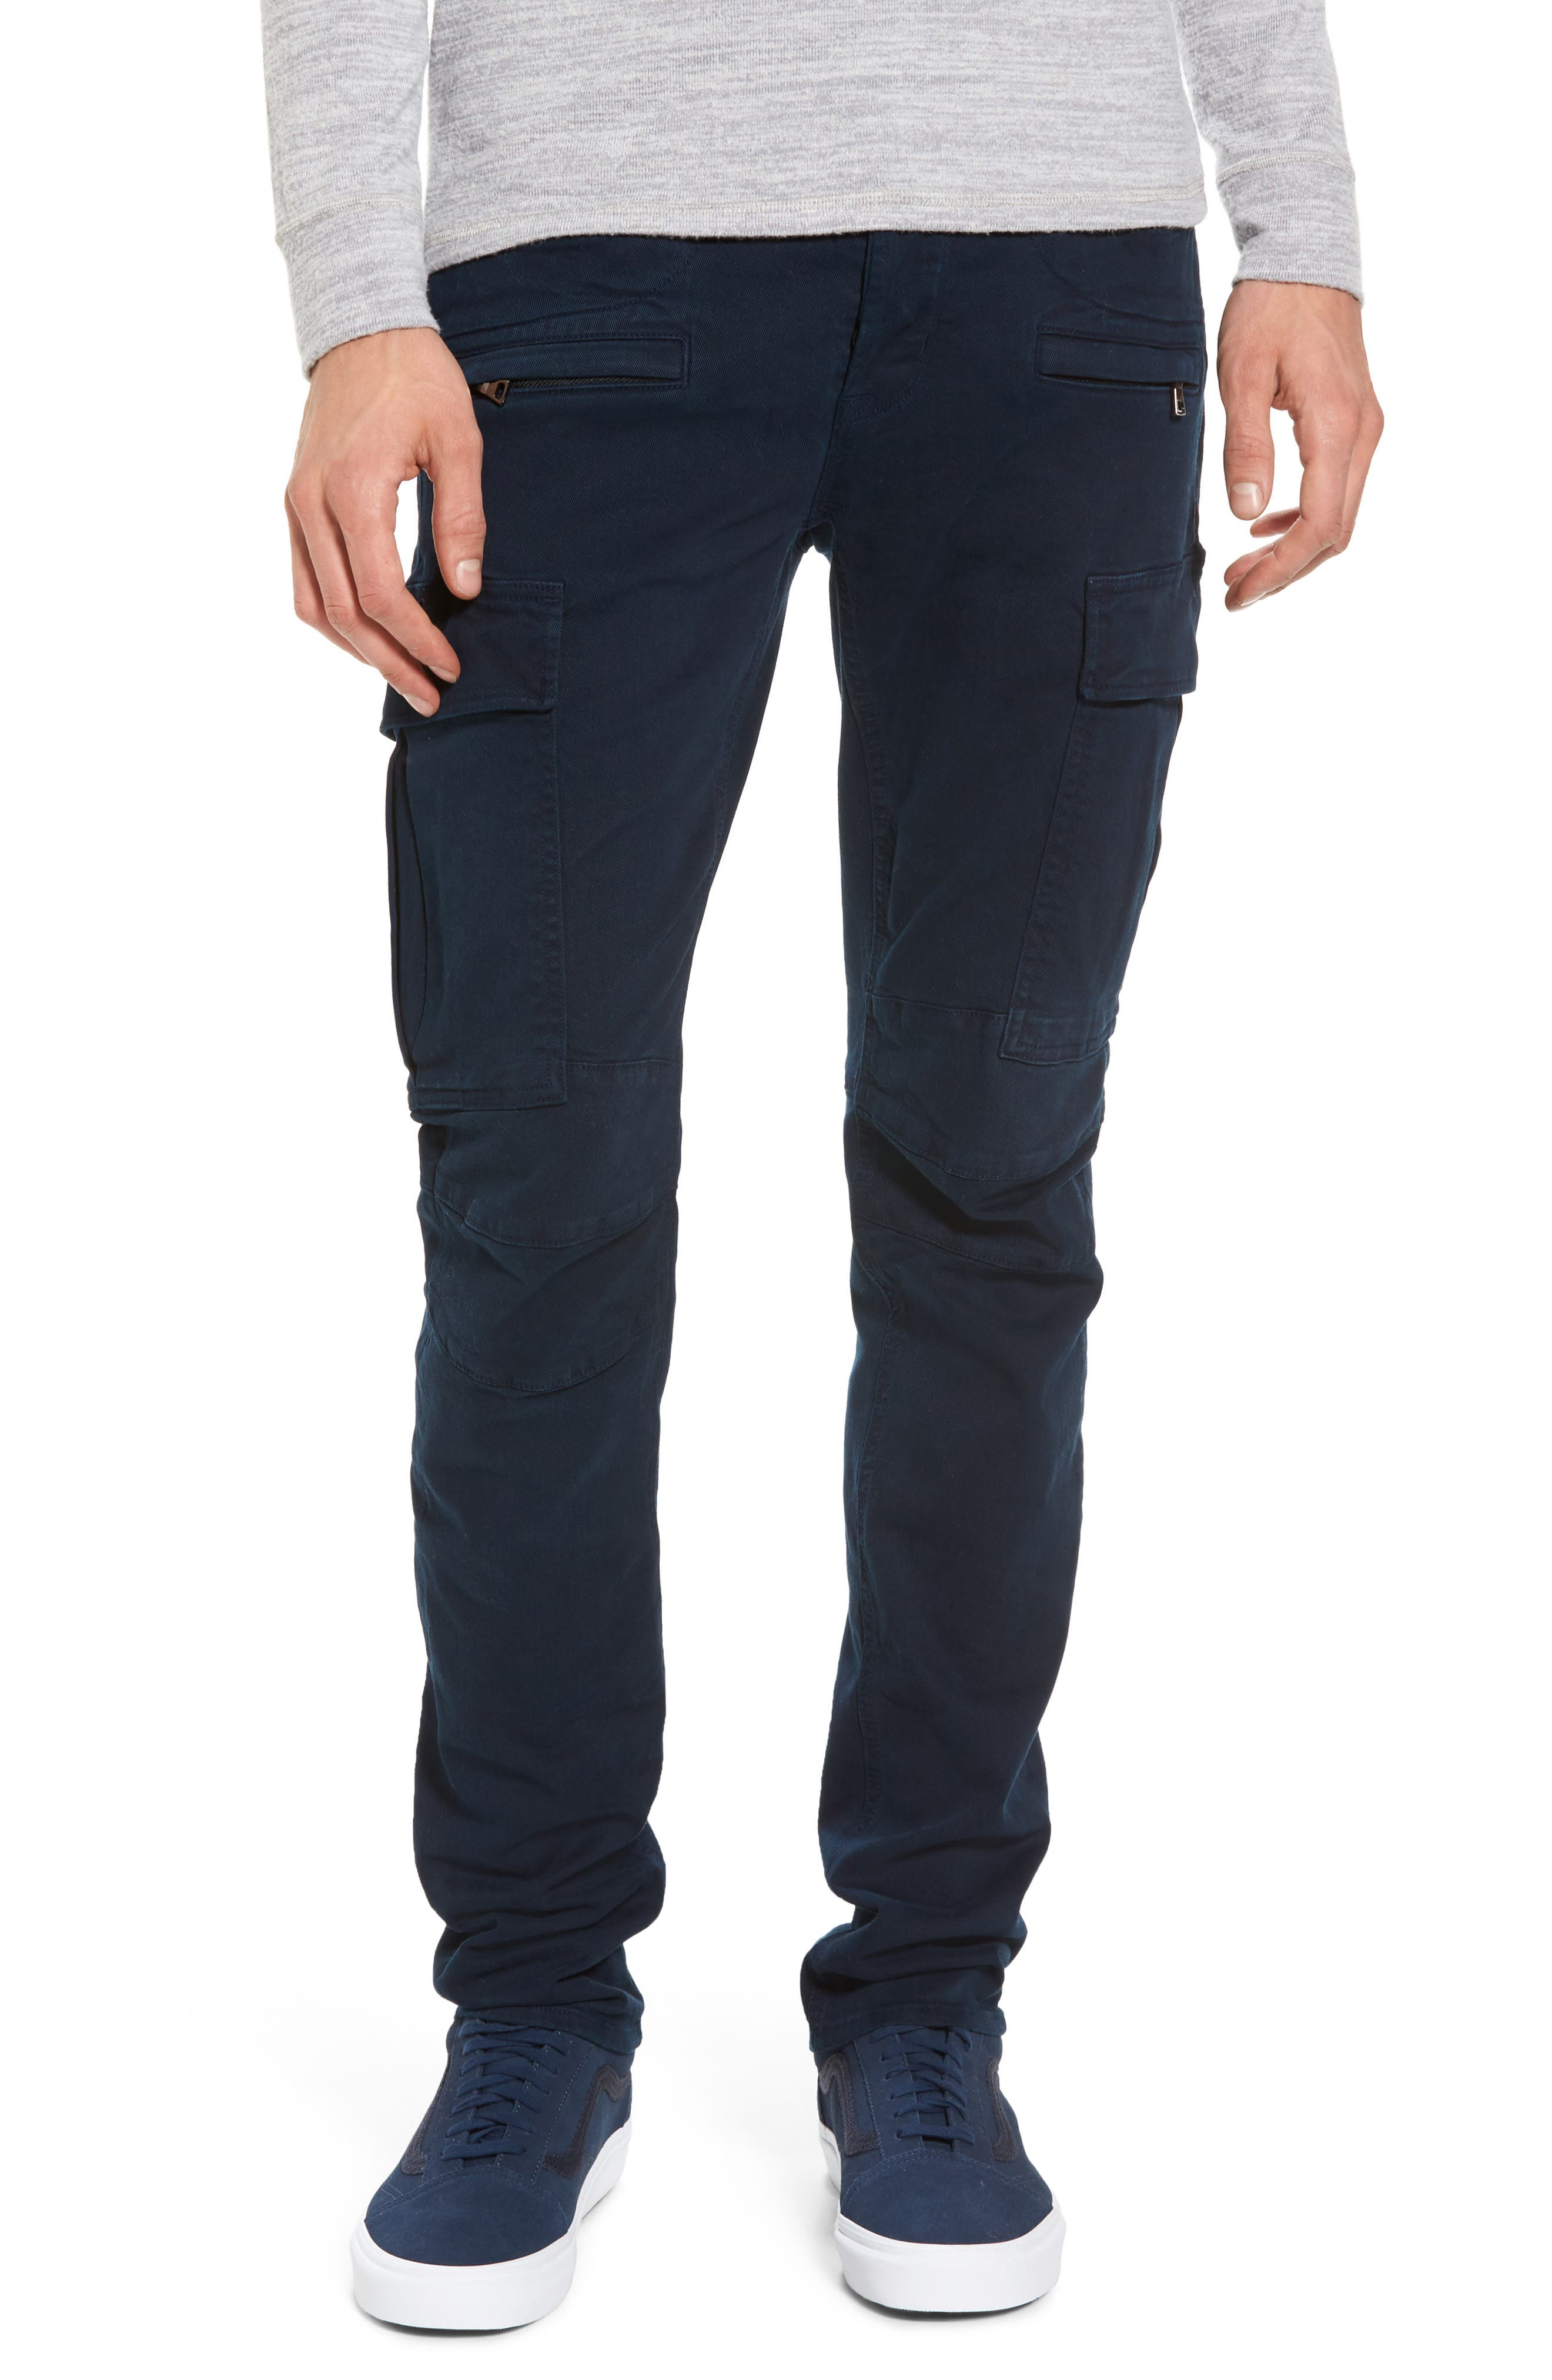 Greyson Cargo Biker Skinny Fit Jeans,                         Main,                         color,